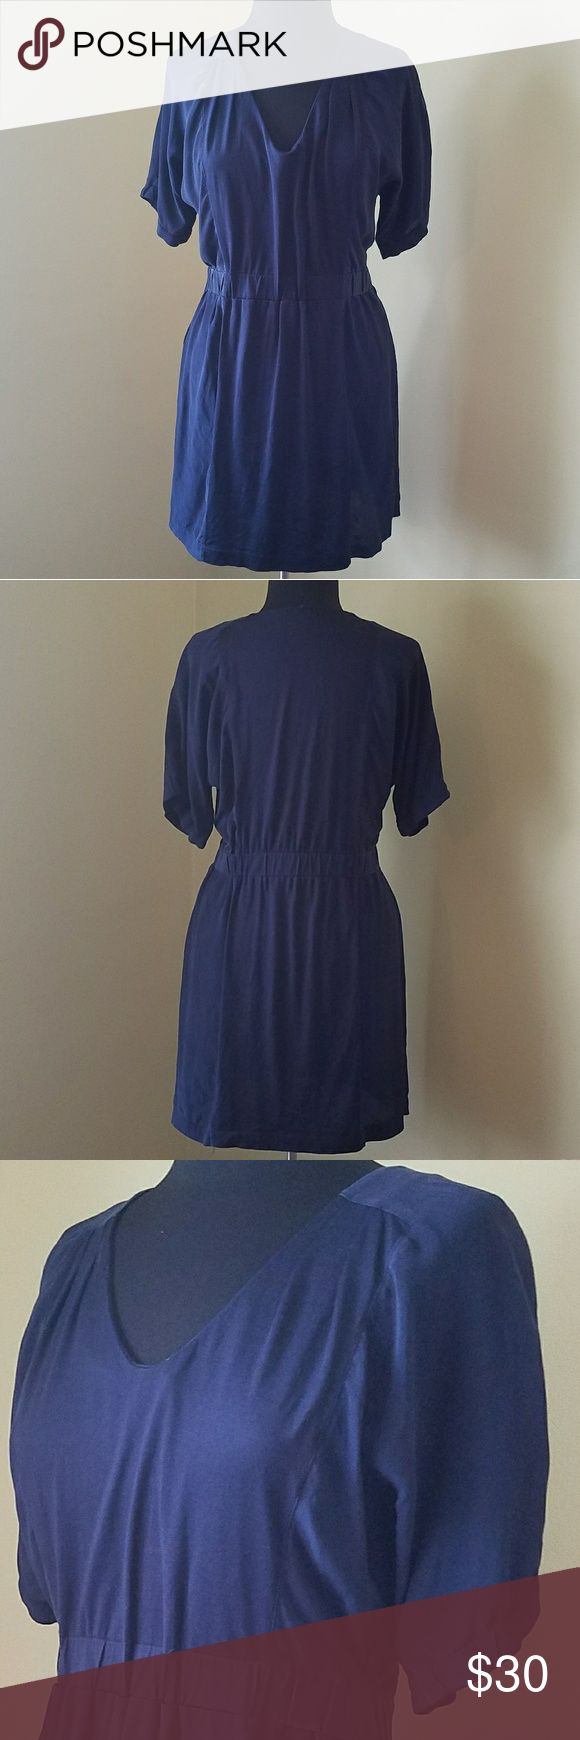 J Crew, Med, Navy Silk Panel Dress Pefect work to play dress!  Great condition. Gently used.   Navy silk panel dress with 3/4 sleeves and feminine pleating from waist.  Minor loose threading at front pleats as shown in last photo. j crew Dresses Midi